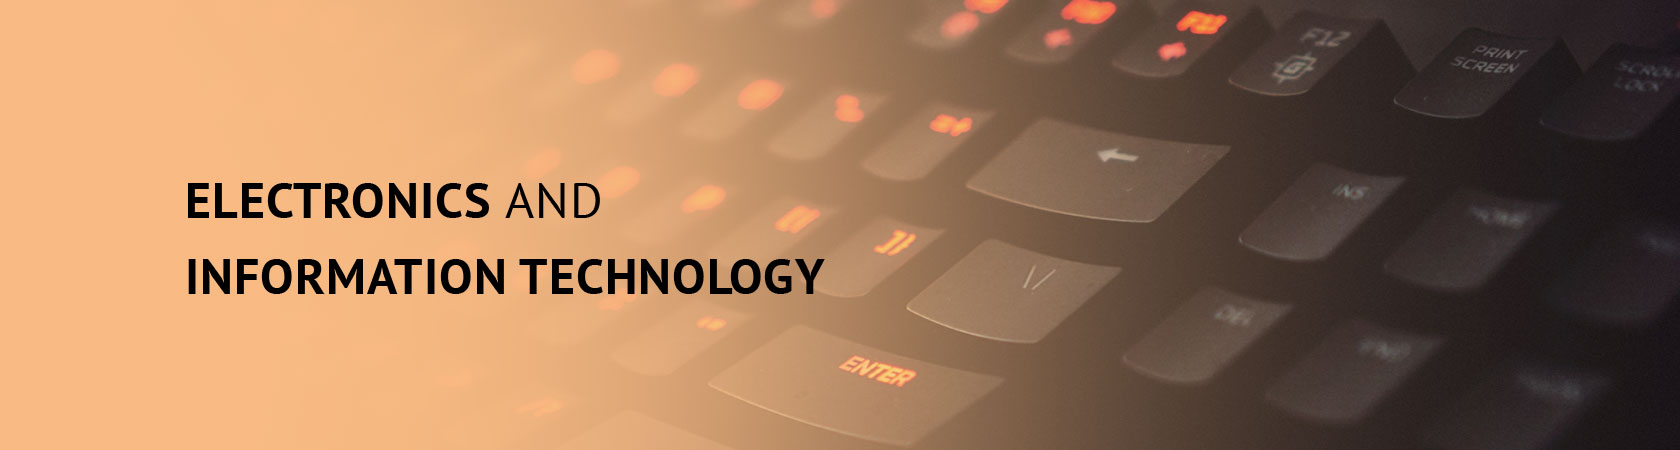 ELECTRONICS AND INFORMATION TECHNOLOGY